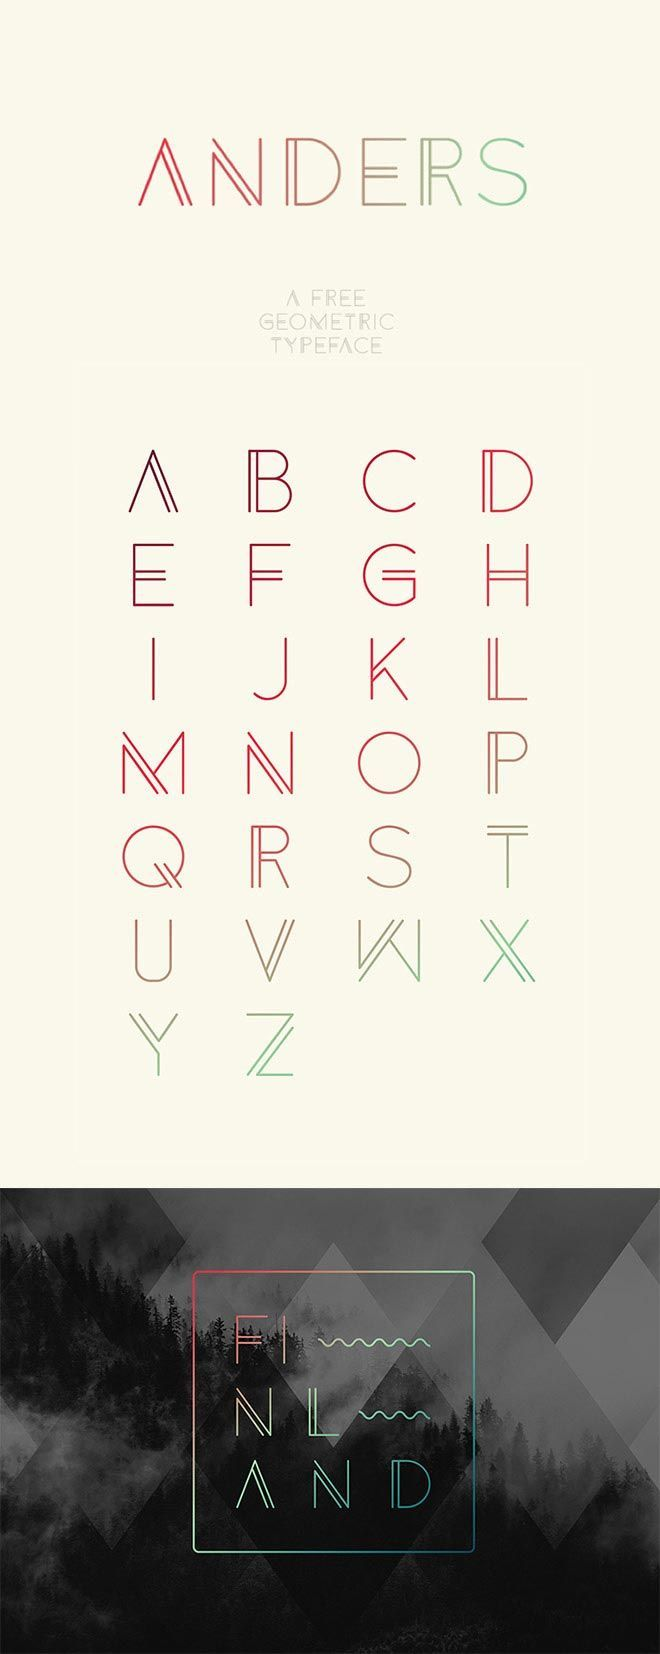 Quality FREE Fonts You Probably Don't Own, But Should! AndersAnders